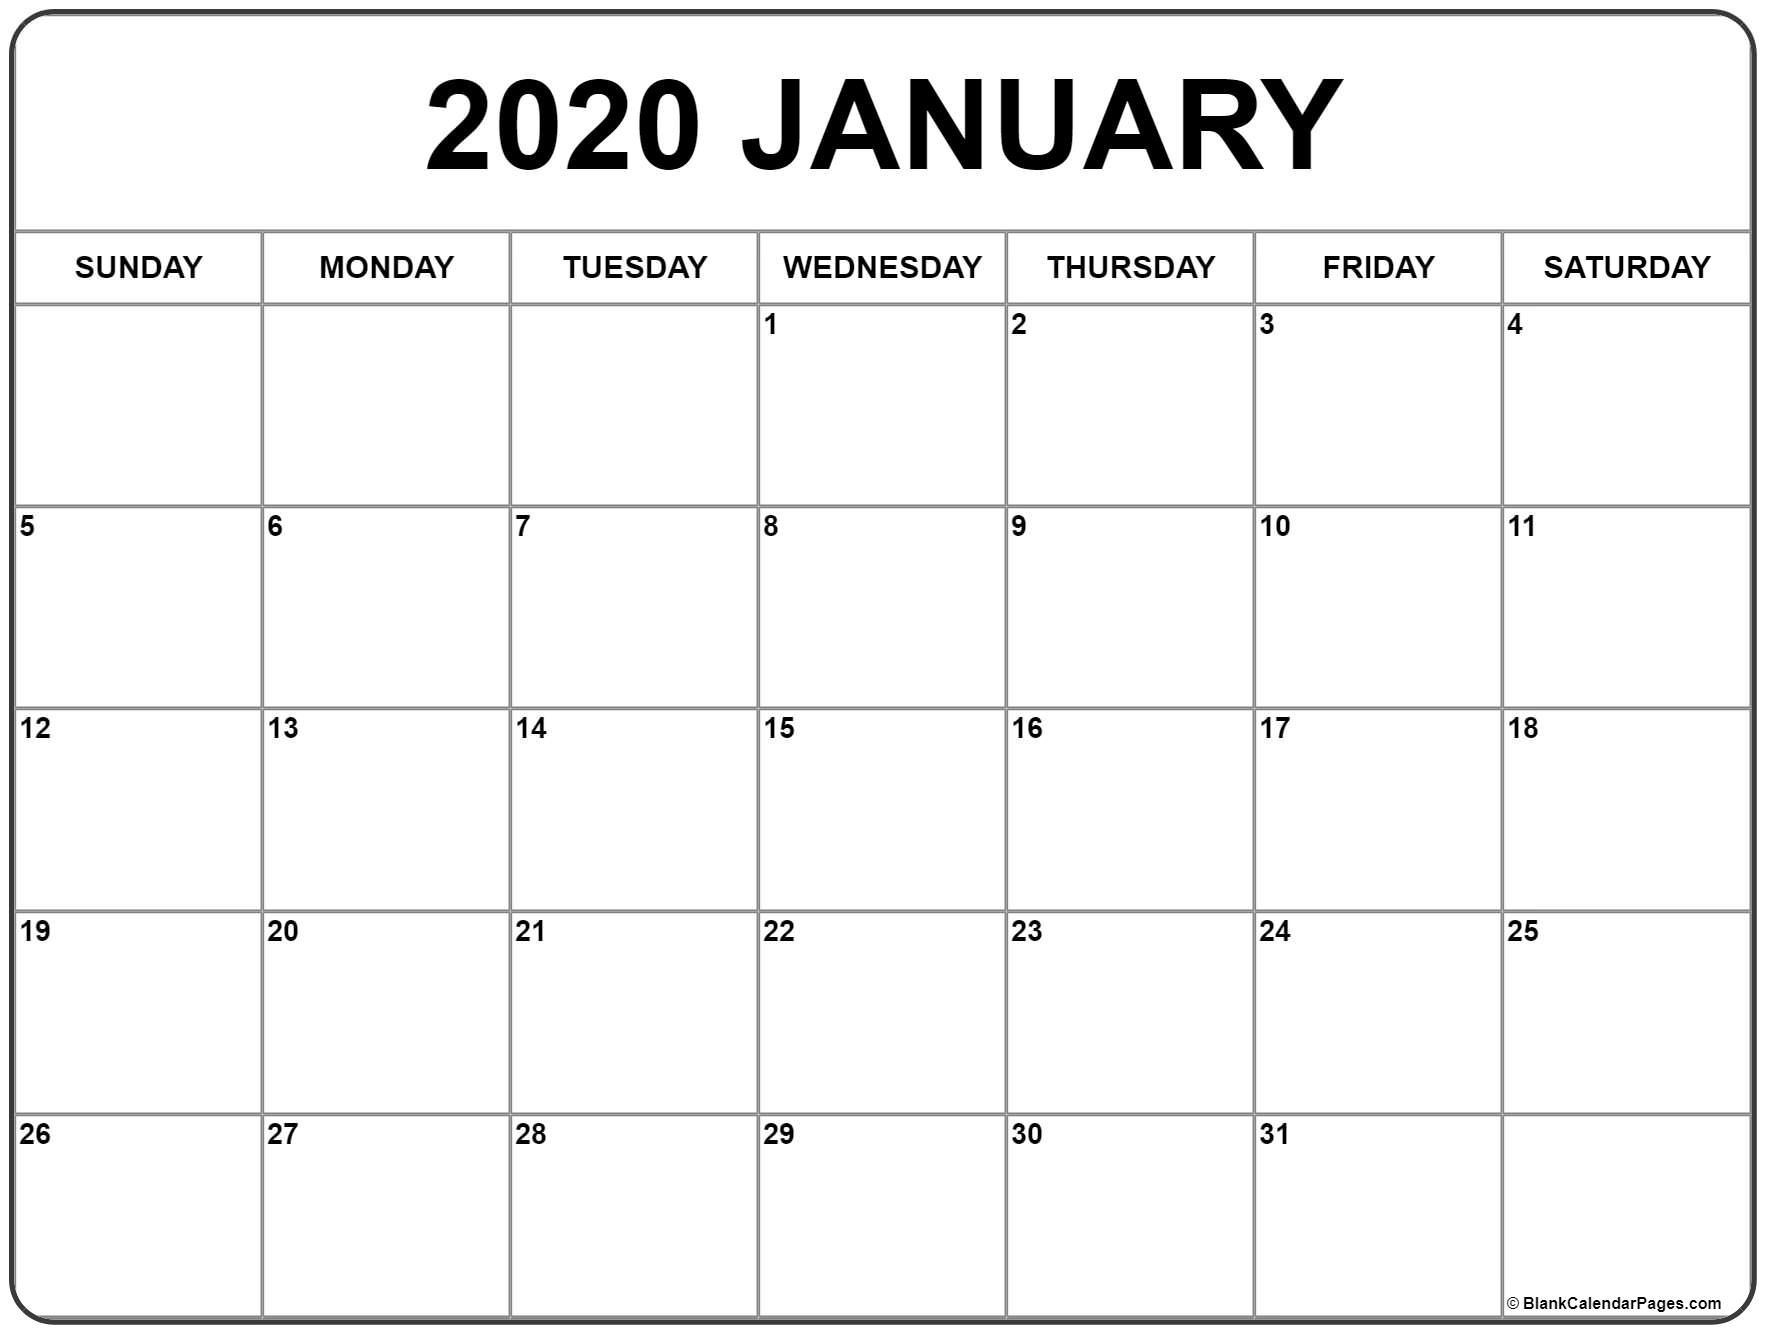 January 2020 Calendar | Free Printable Monthly Calendars  Free Printable Calendar Templates